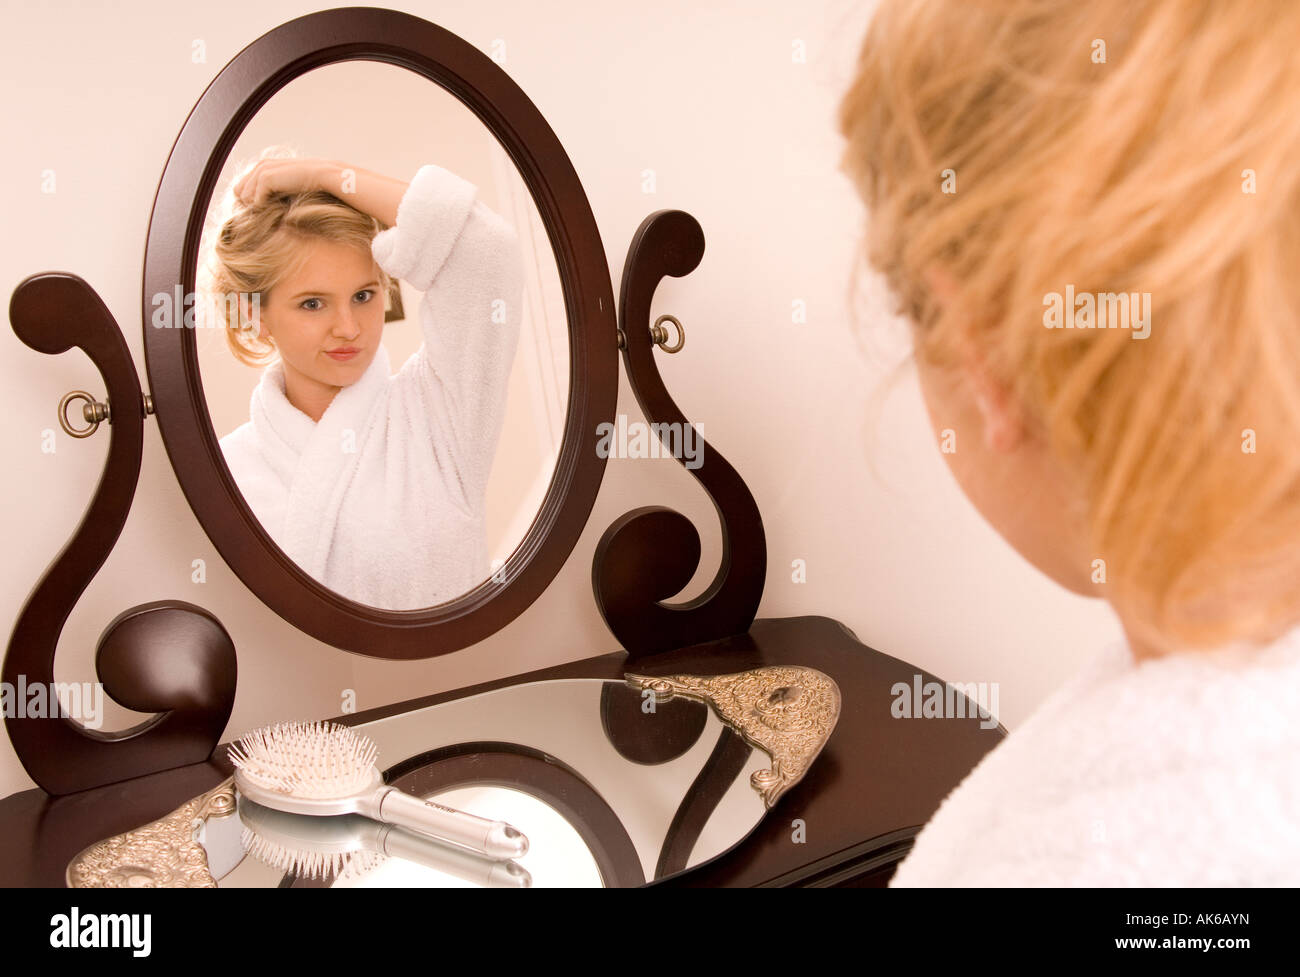 Caucasian Teen Girl (15-17) Looking in Mirror and Rolling Hair with Curlers USA - Stock Image